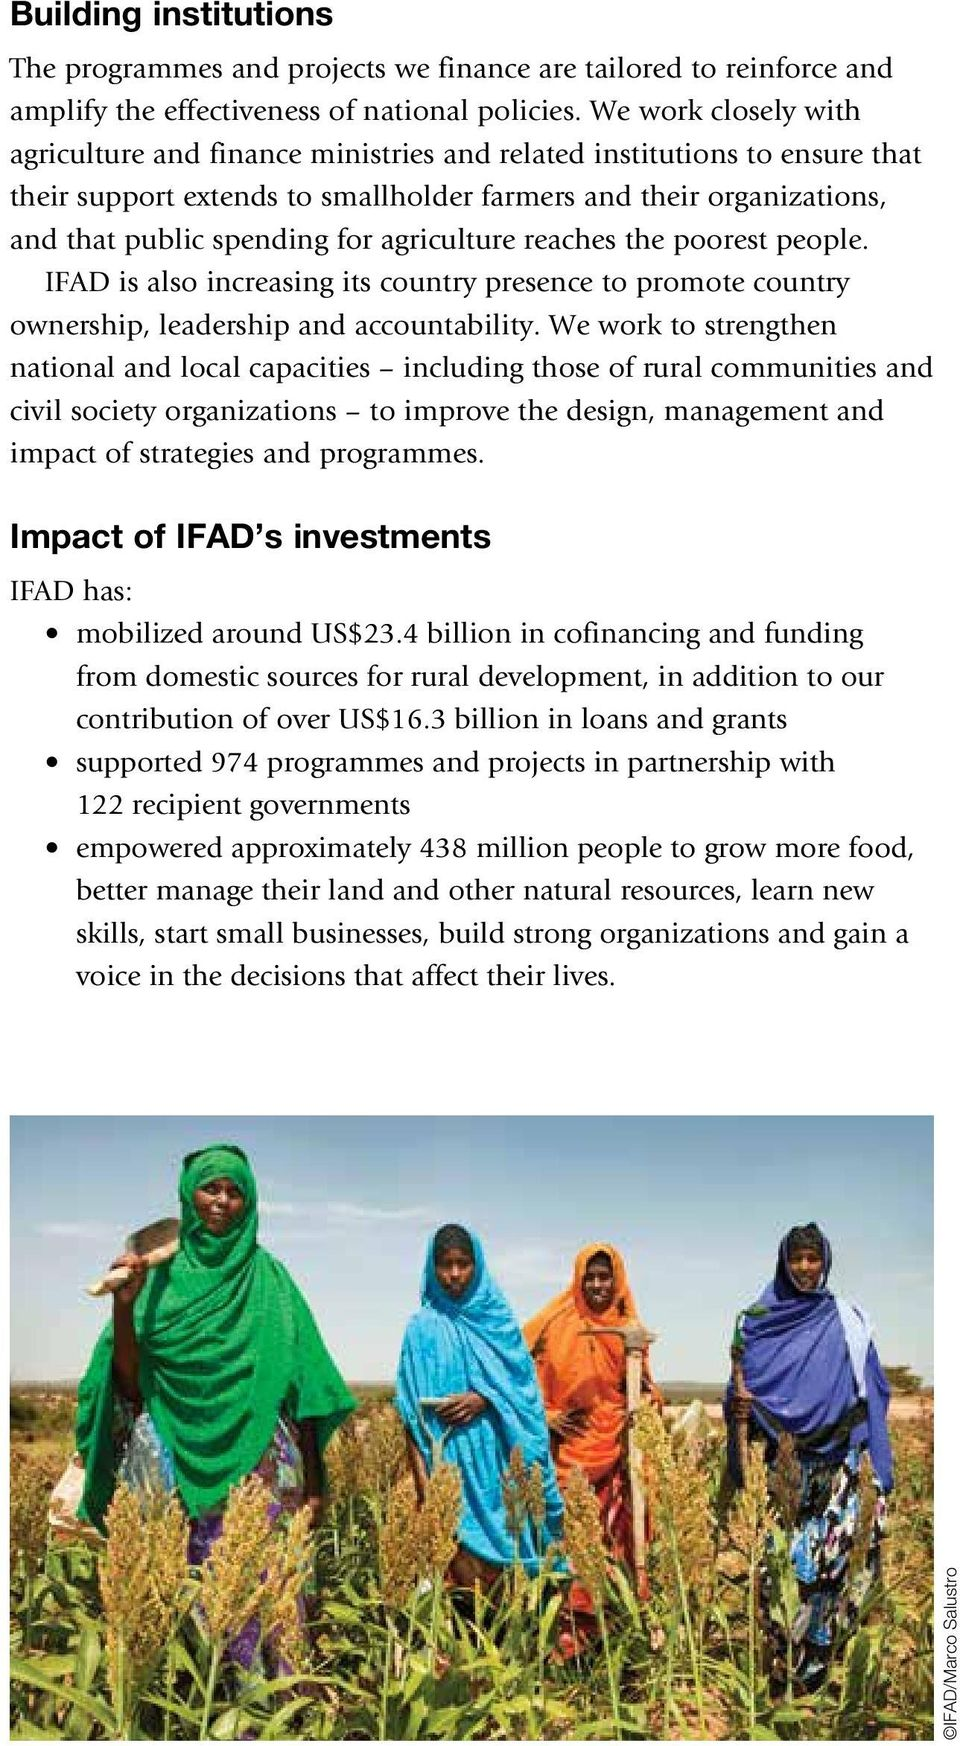 agriculture reaches the poorest people. IFAD is also increasing its country presence to promote country ownership, leadership and accountability.